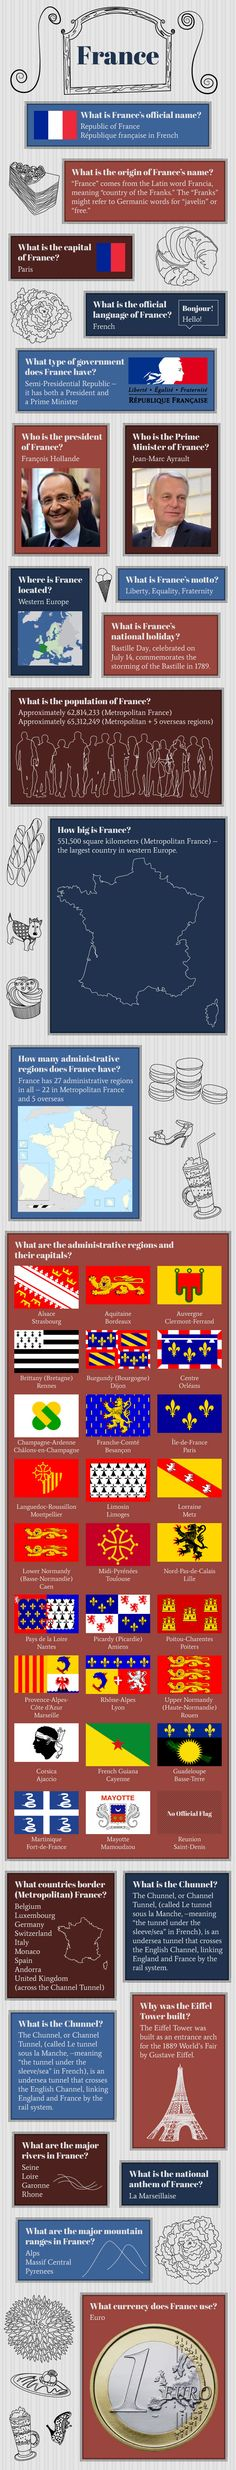 Nice blogpost about Infographic of France Facts by mowpages